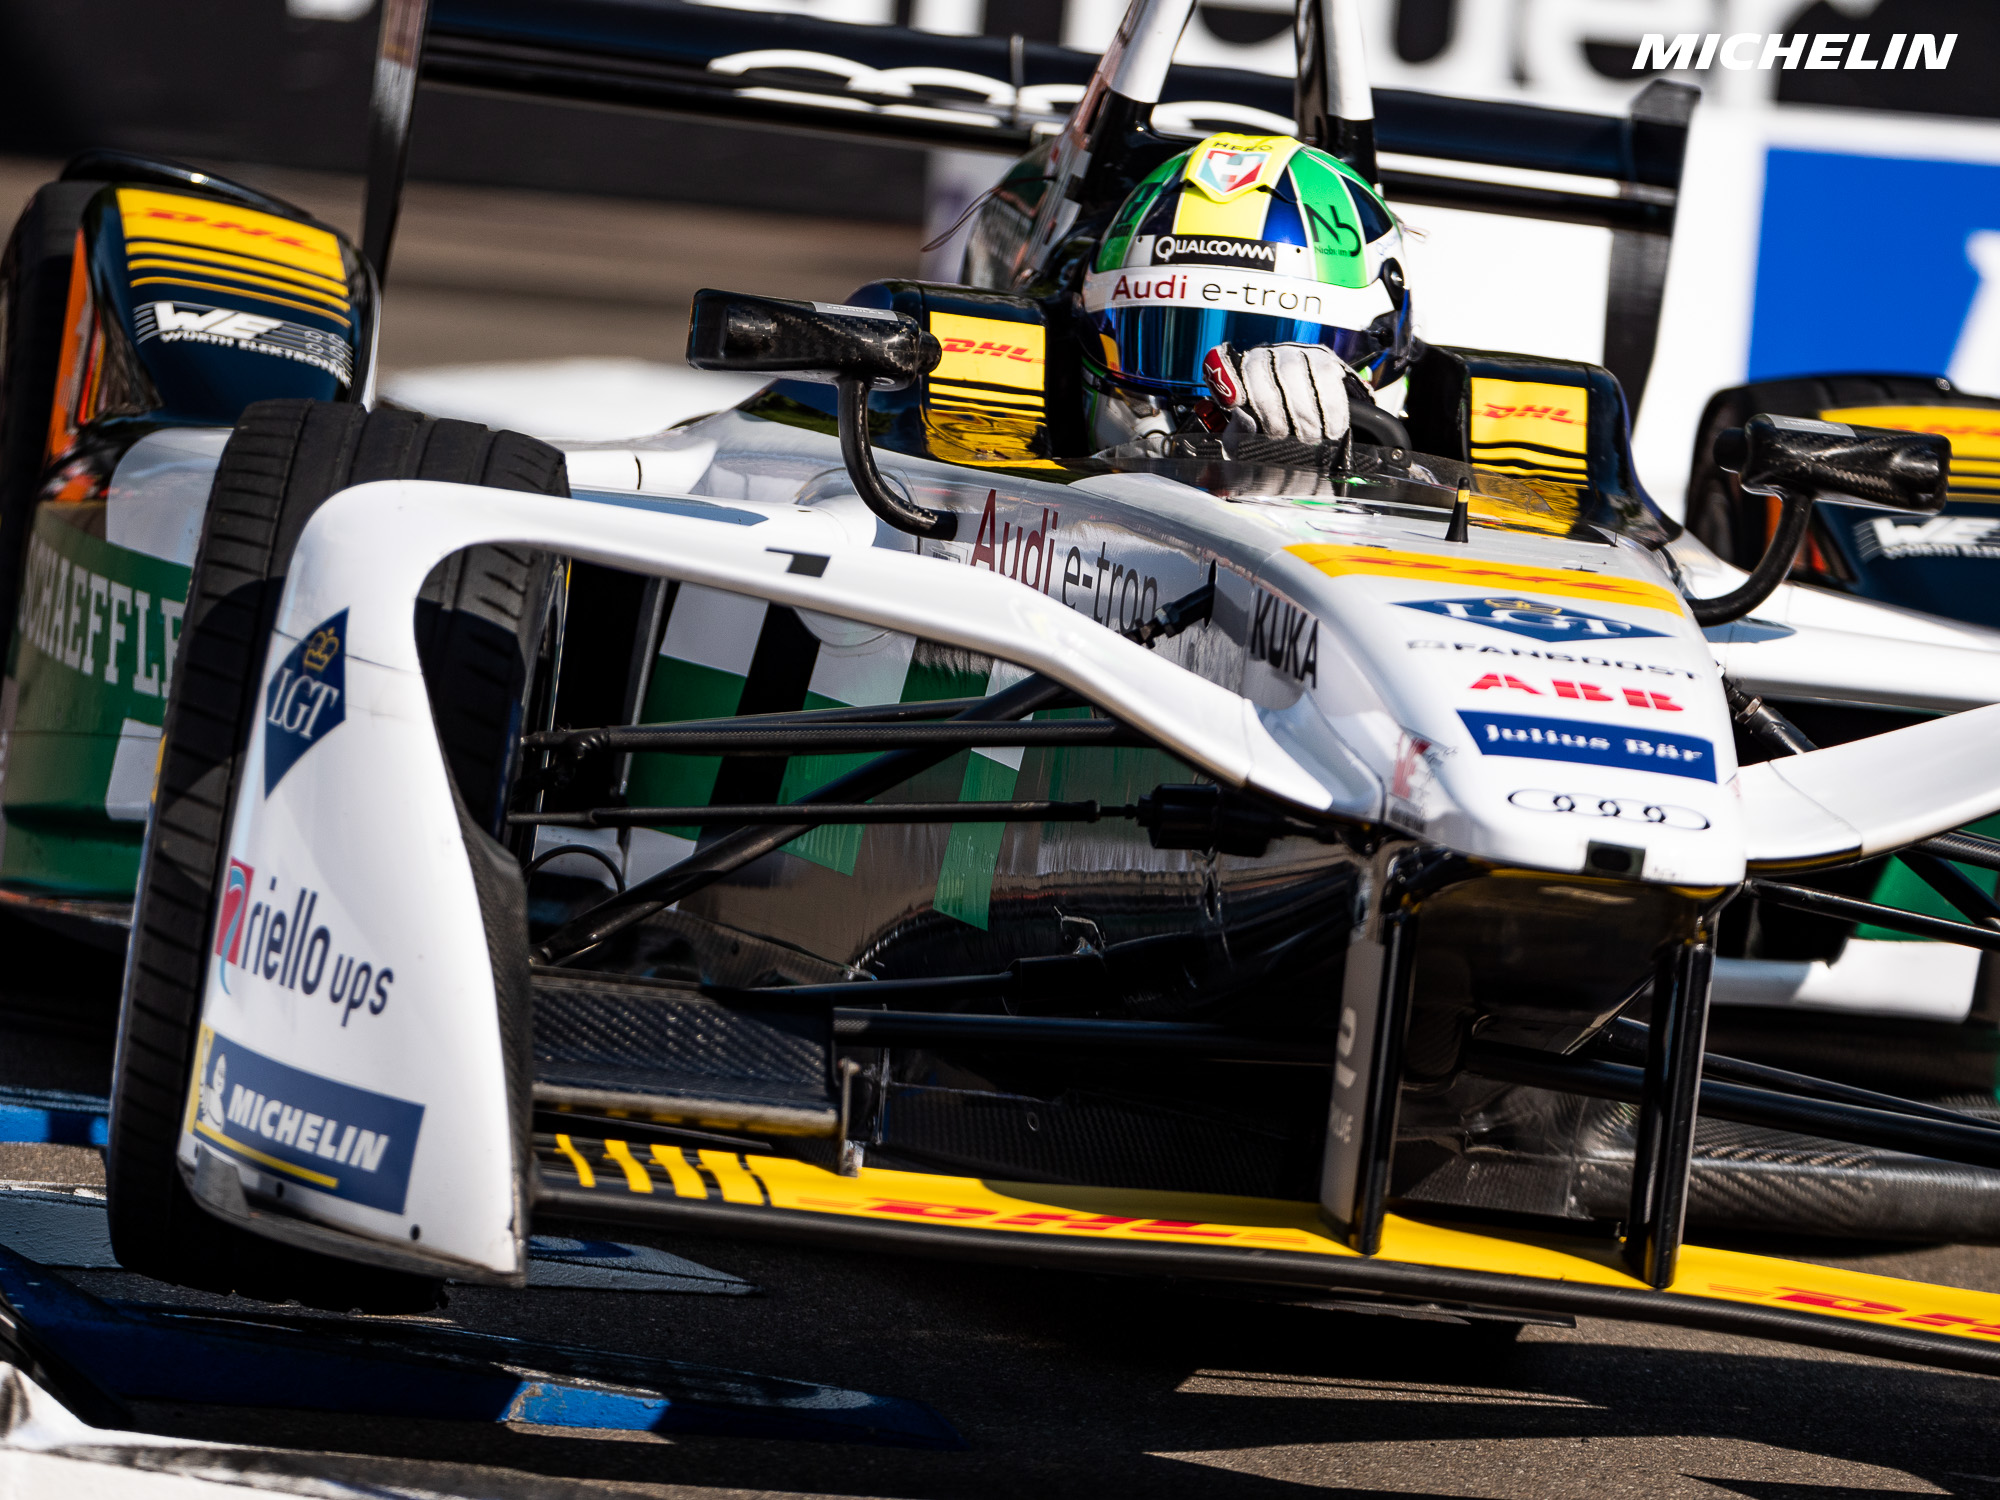 Di Grassi takes the money in Zurich